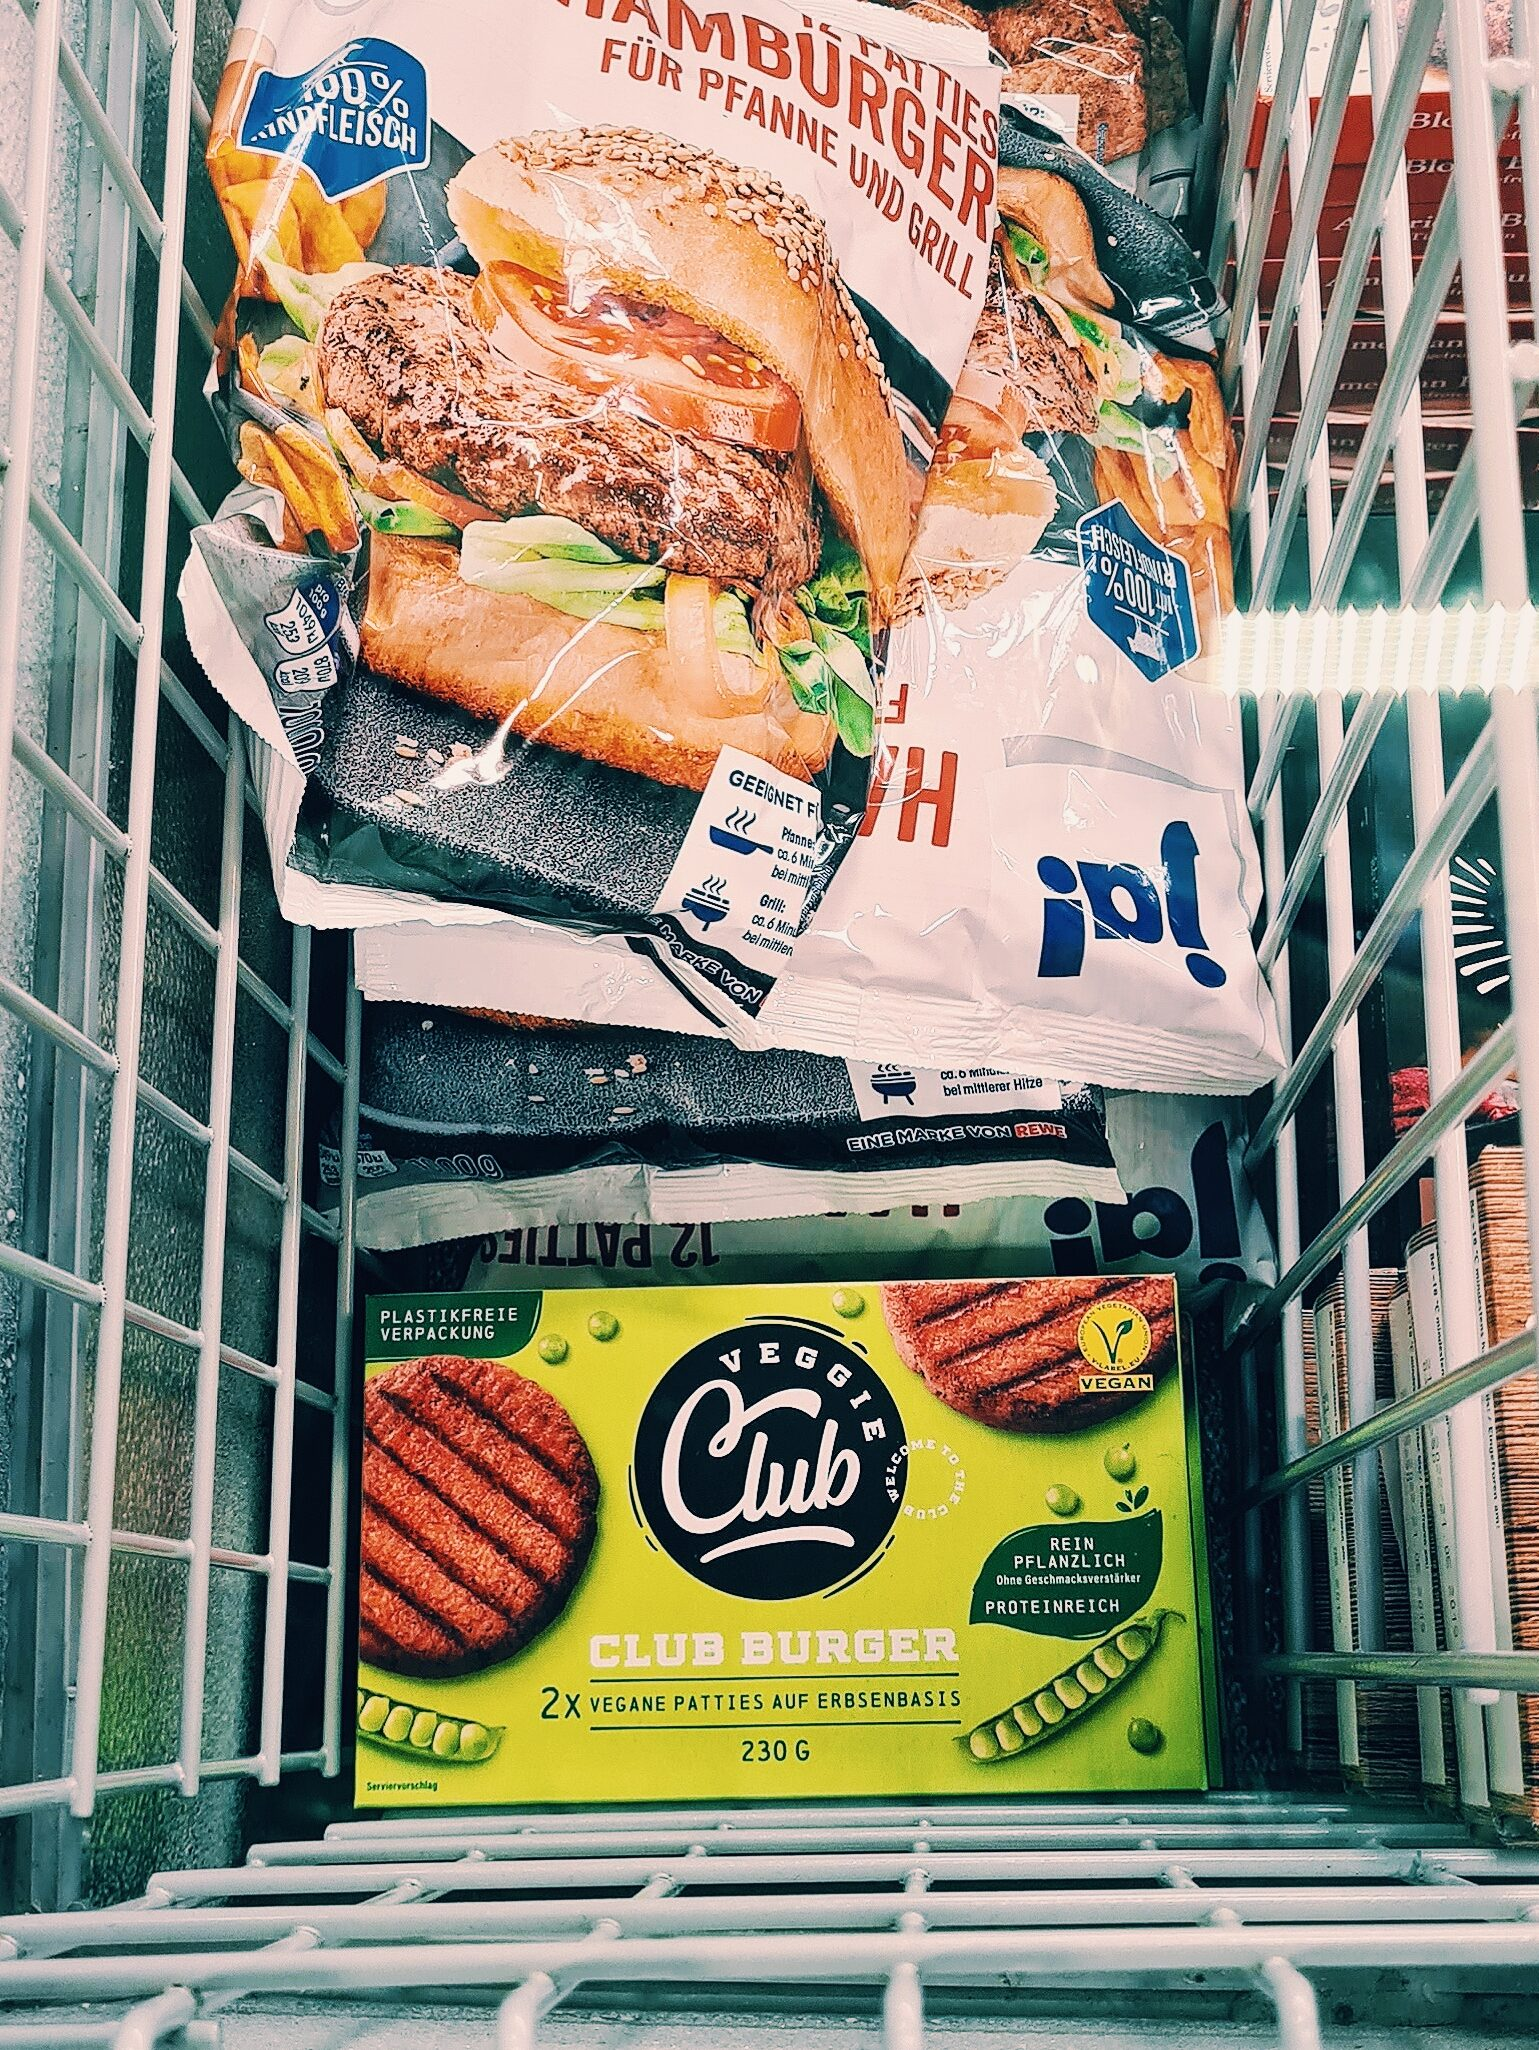 A photo of the meat-free burgers next to meat burgers in the frozen section of a supermarket.